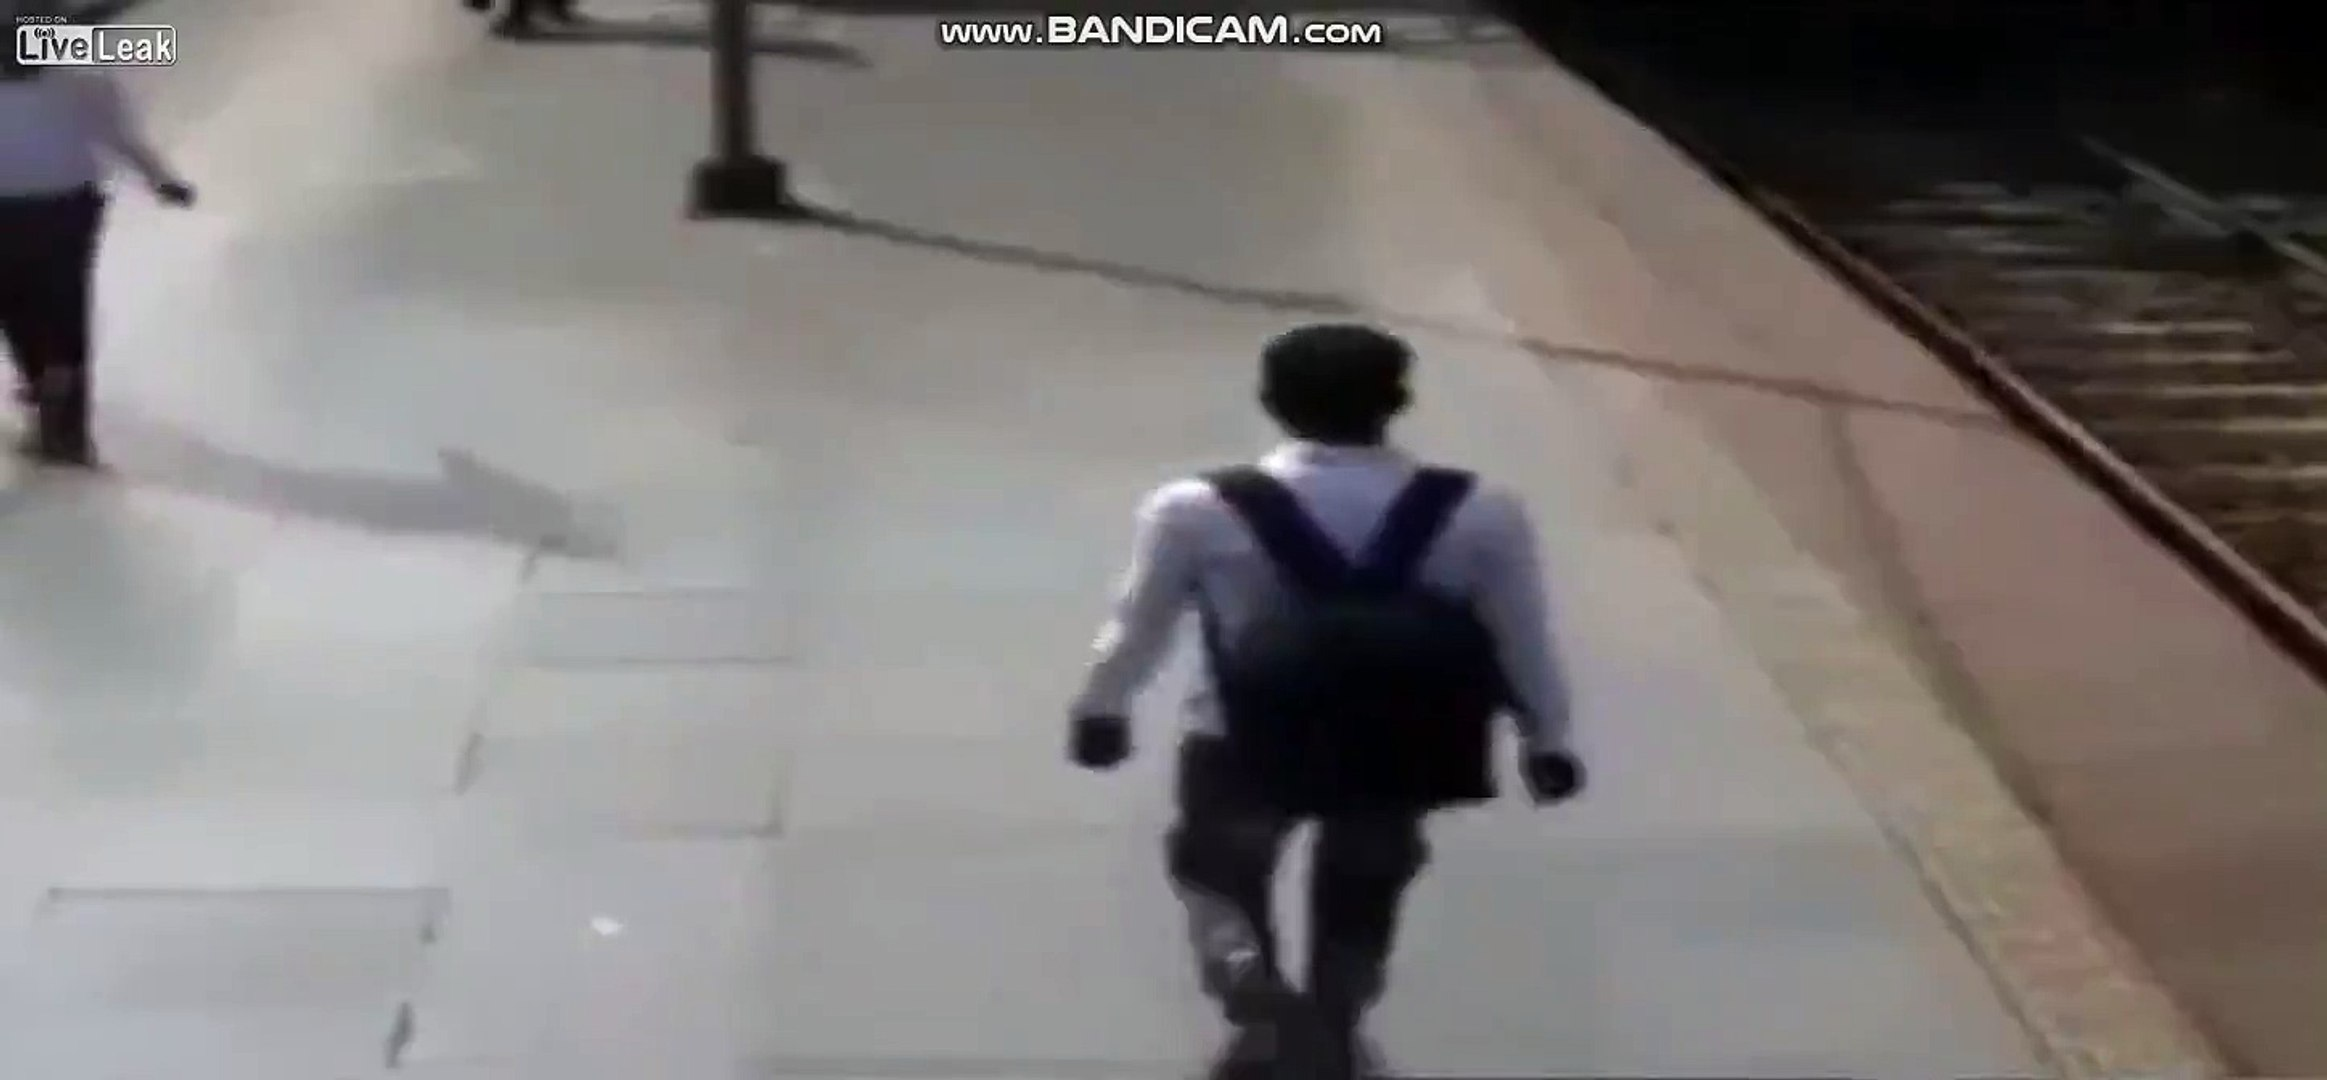 Man tries to catch a train, but train catches him